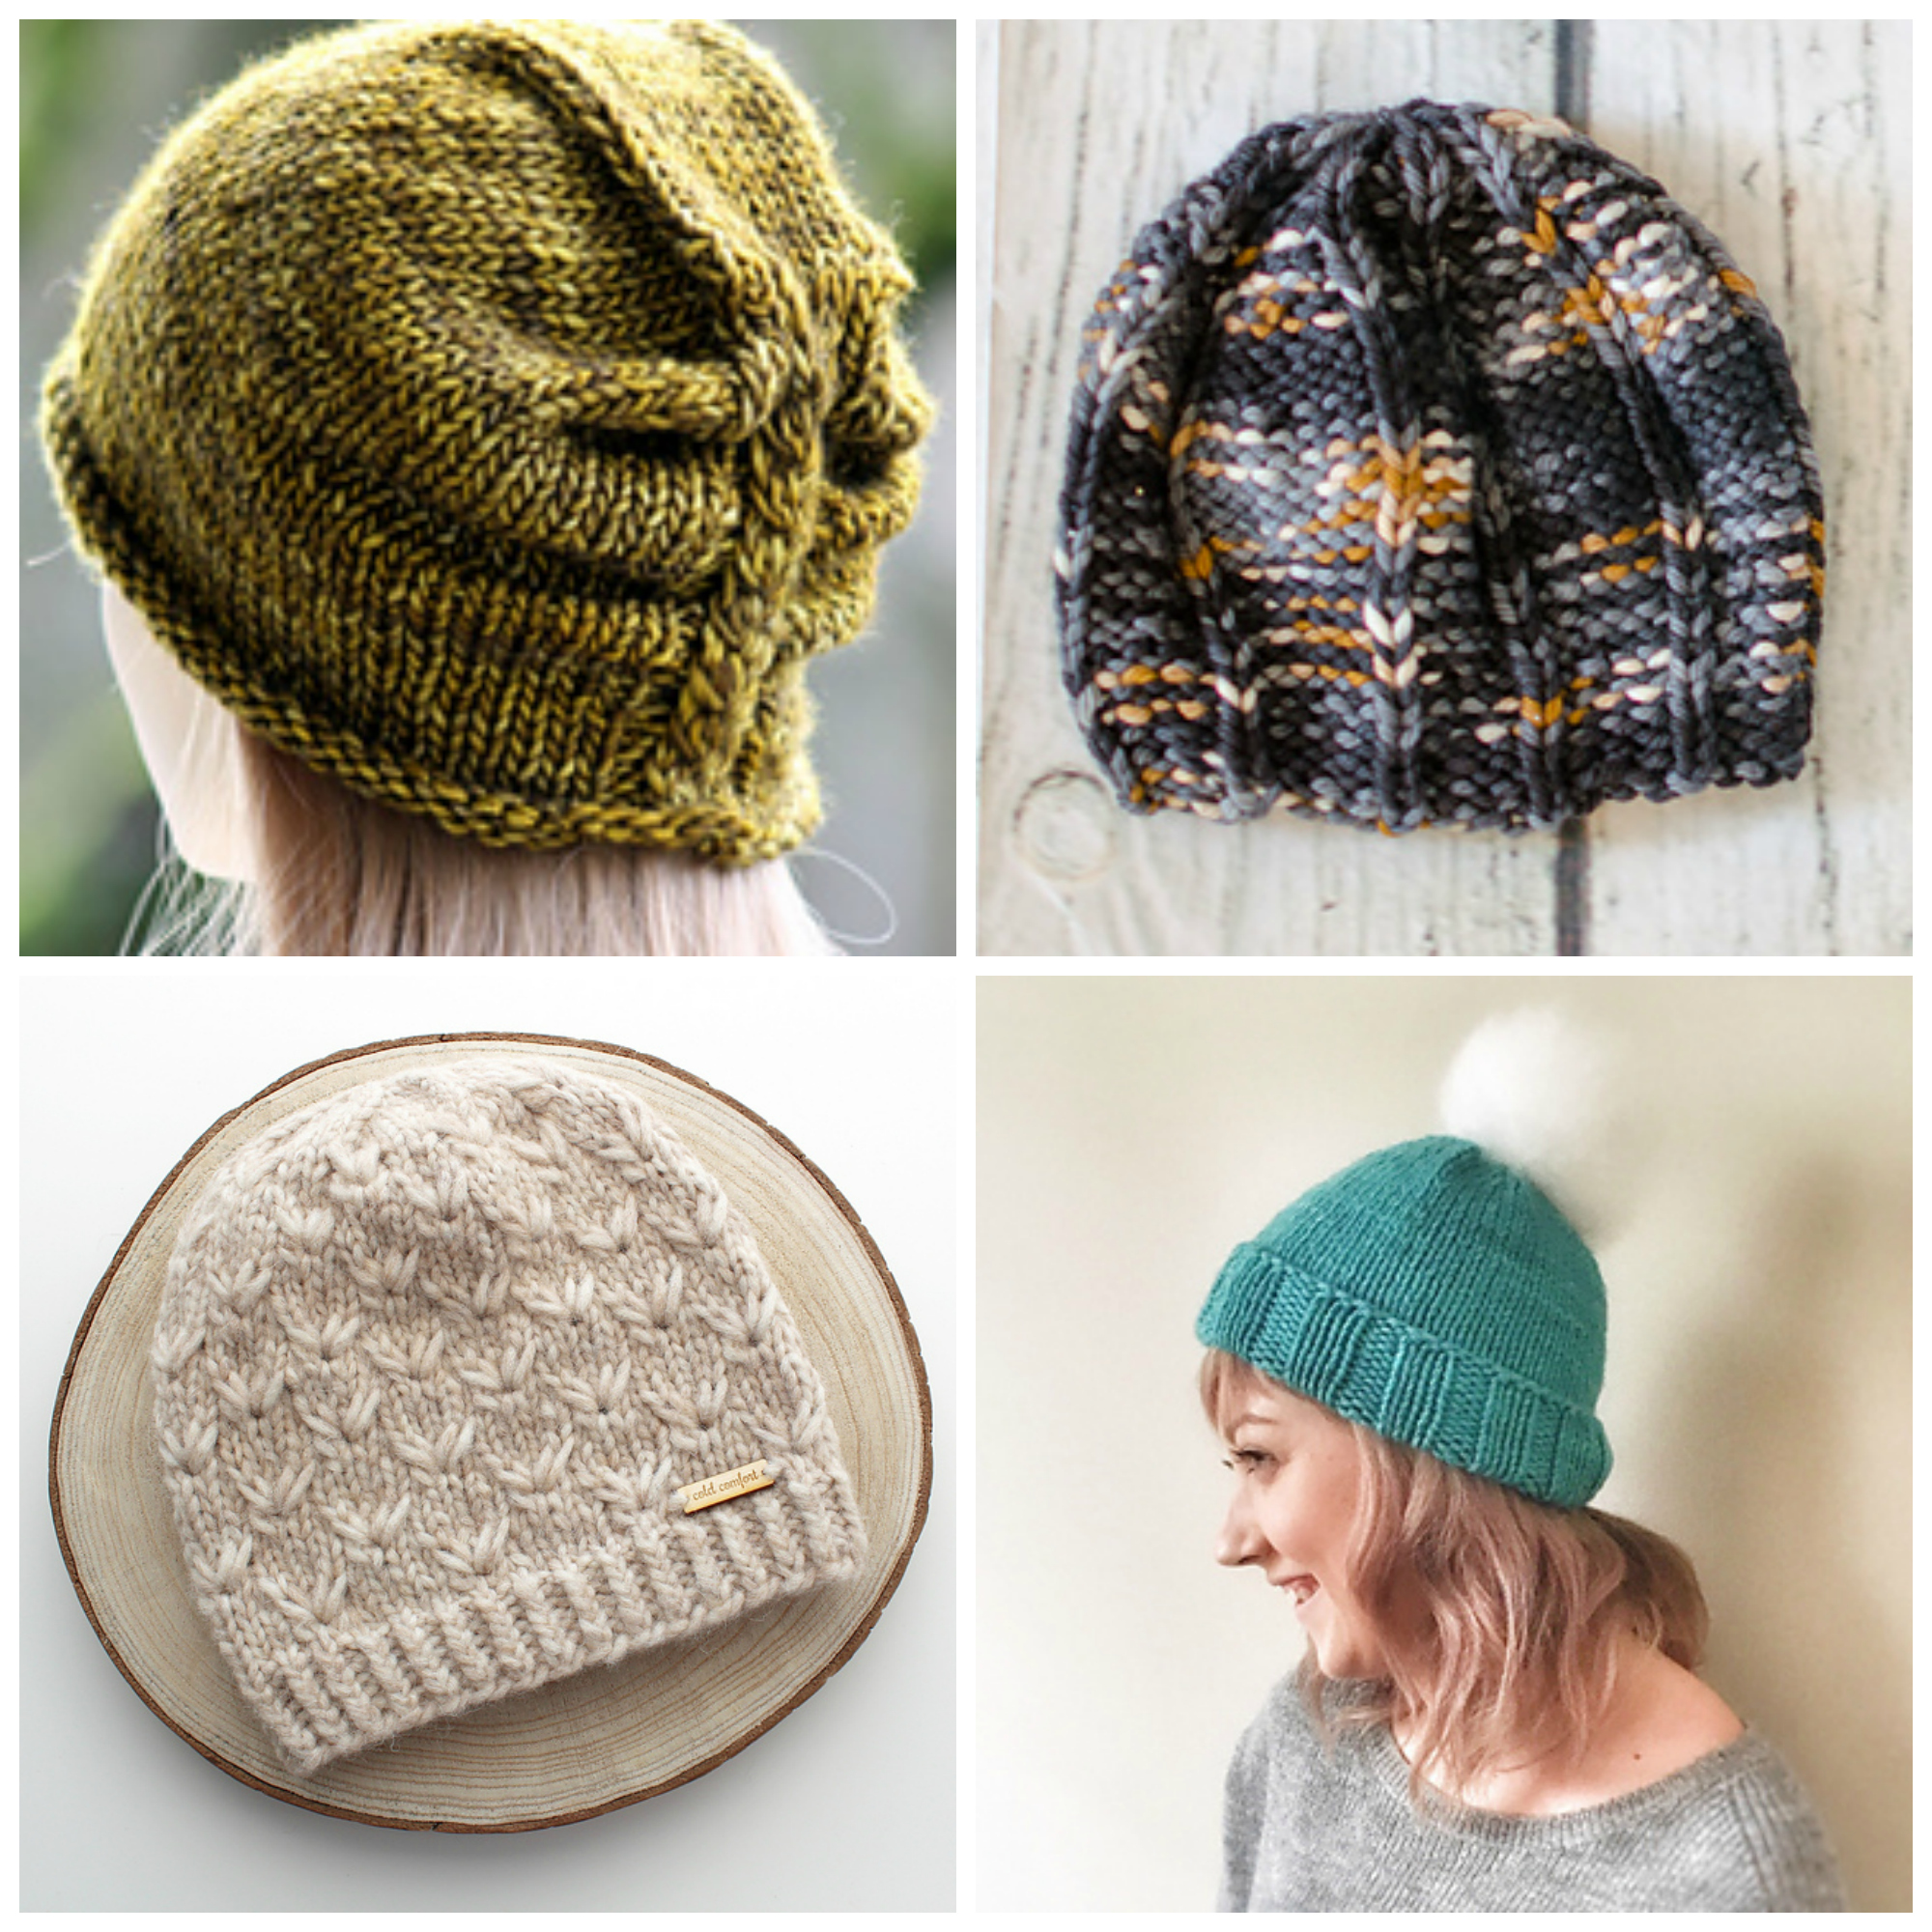 Super Quick Knits: 1 - 2 Skein Bulky Pattern Ideas | Delicious Yarns